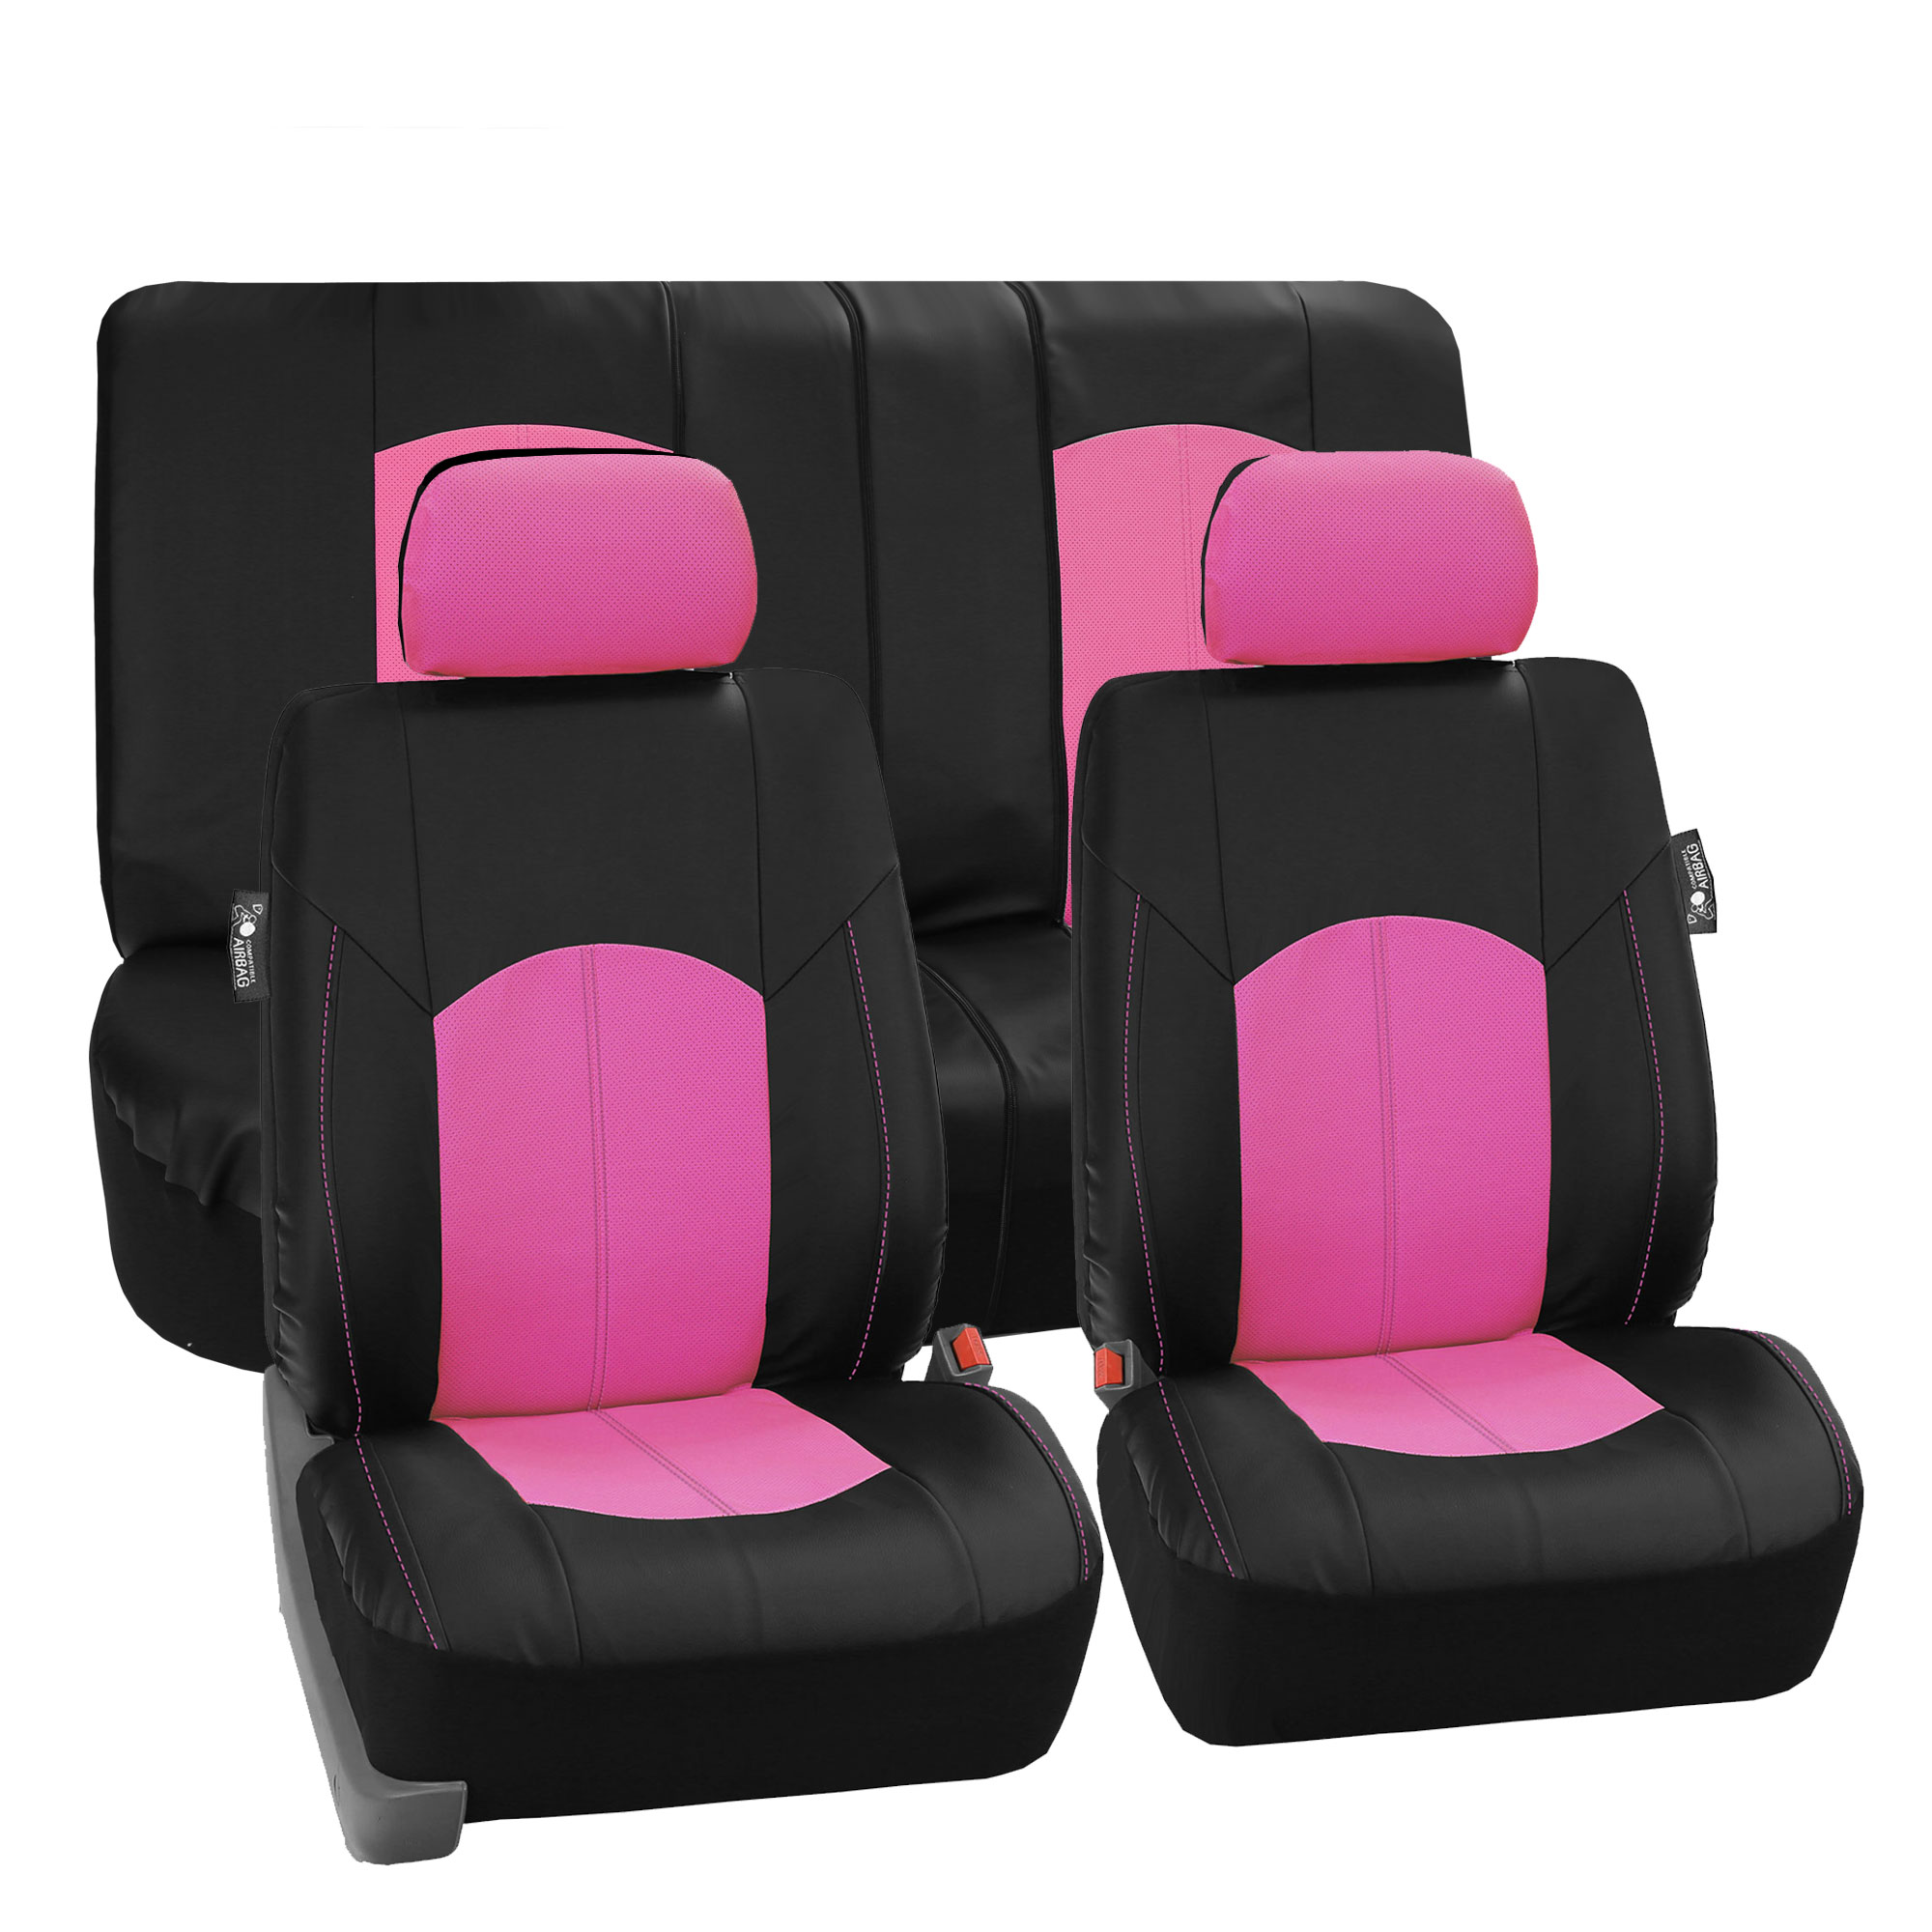 FH Group, Perforated Leather Seat Covers for Auto Car Sedan SUV Van, Full Set with 2 Headrest Covers, 8 Colors